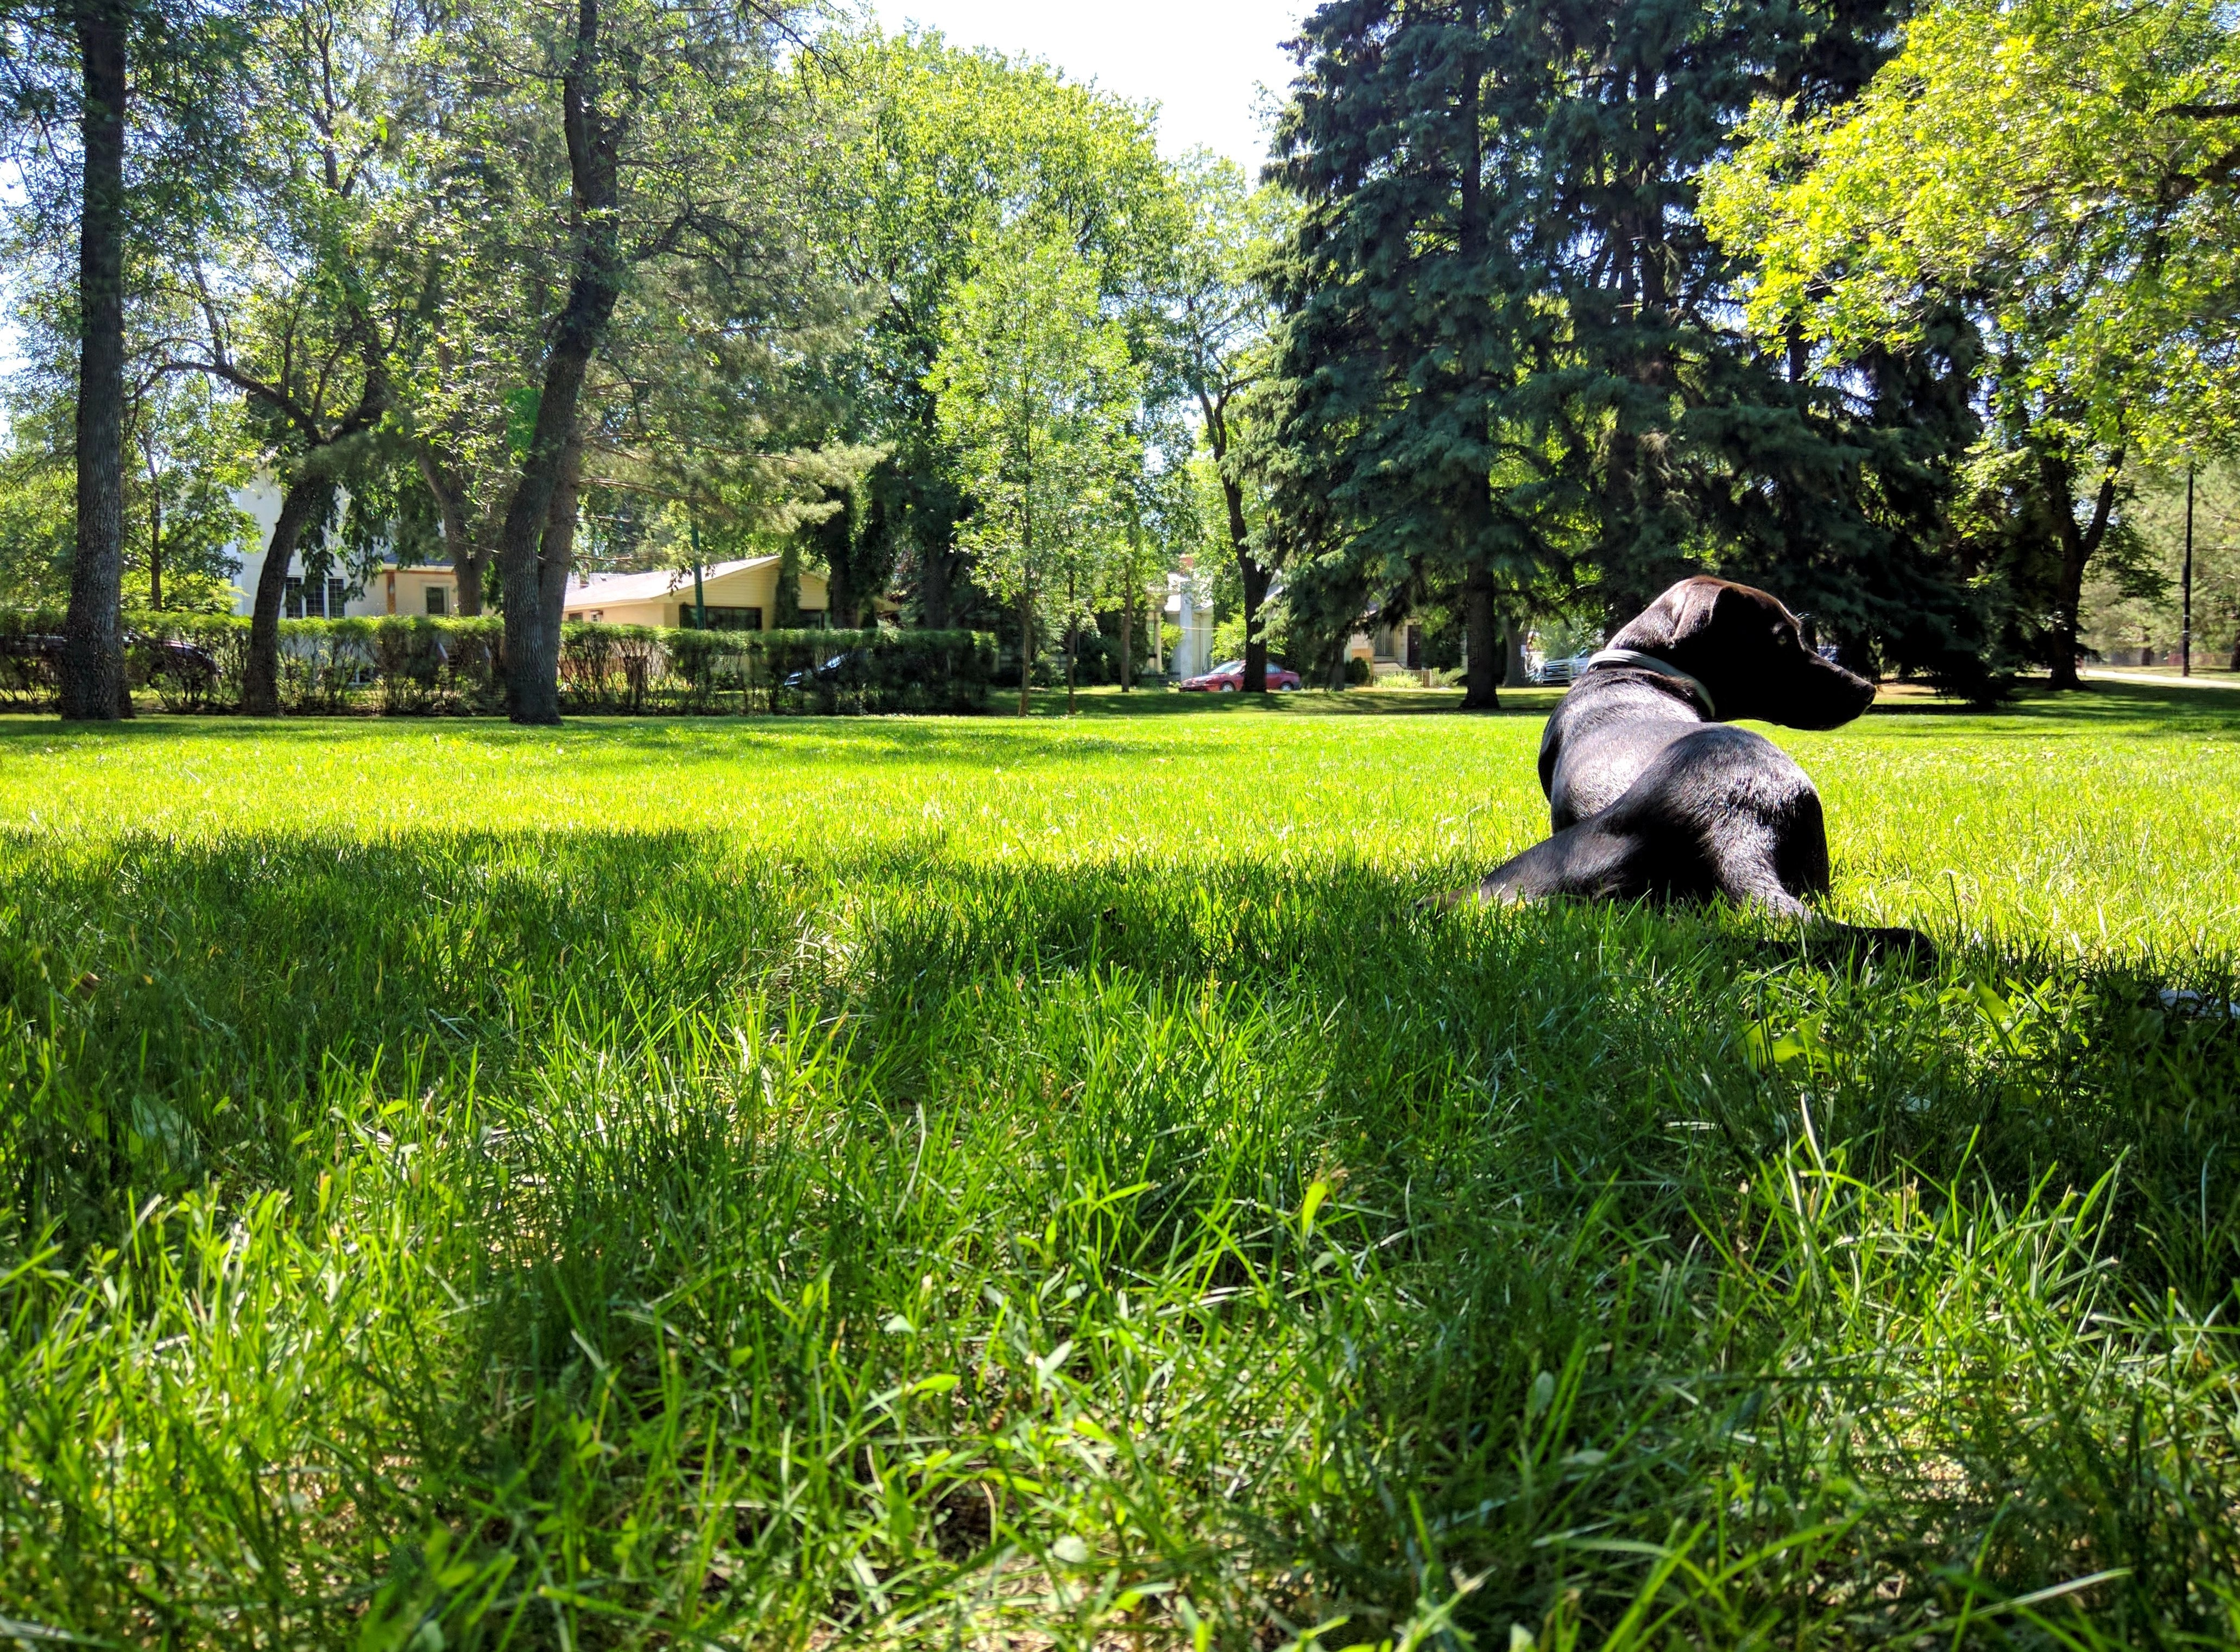 Odin relaxes in the green grass of a Saskatoon park